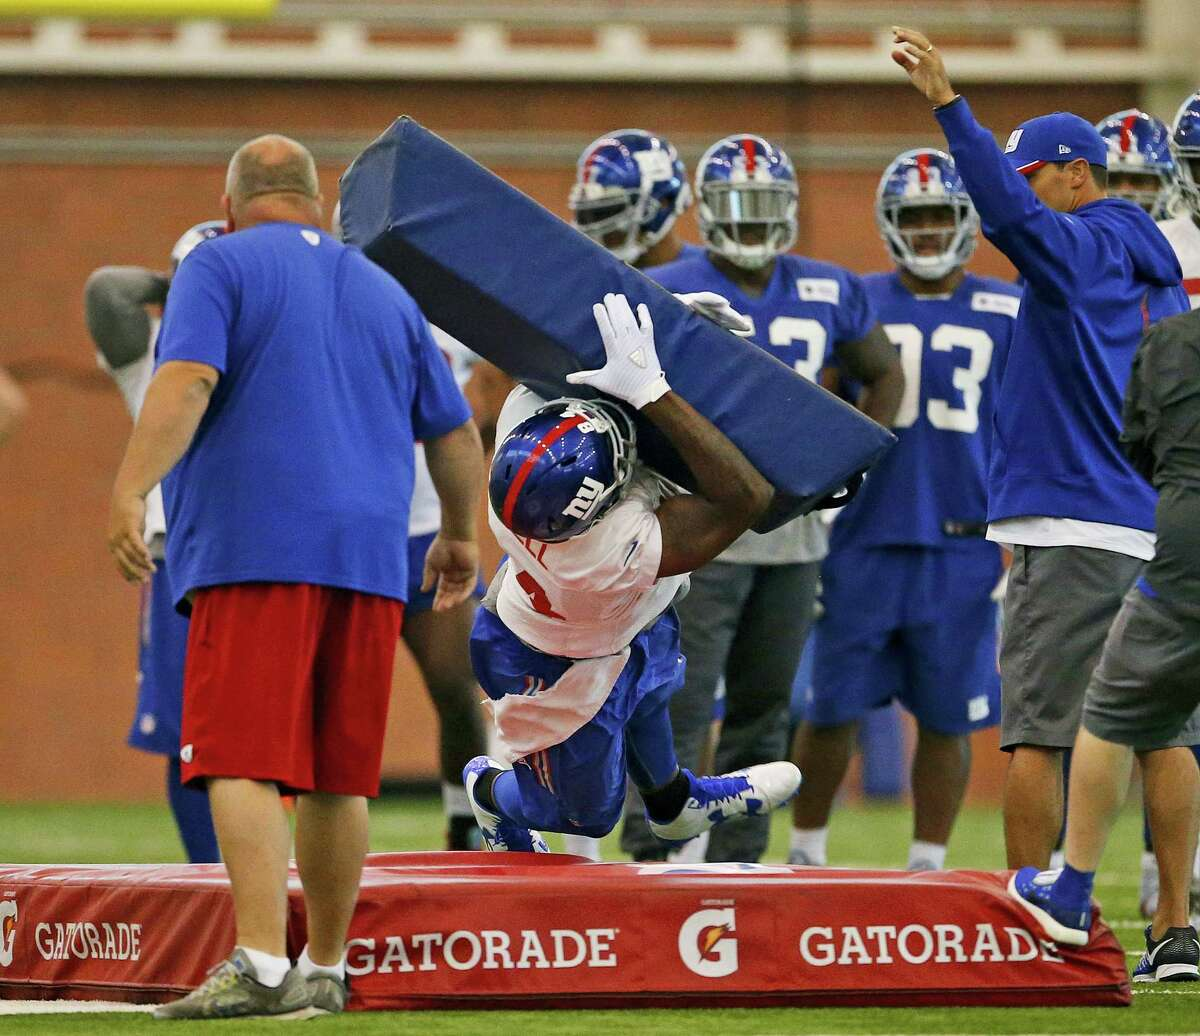 Giants tight end Larry Donnell dives at a blocking pad during a recent practice.